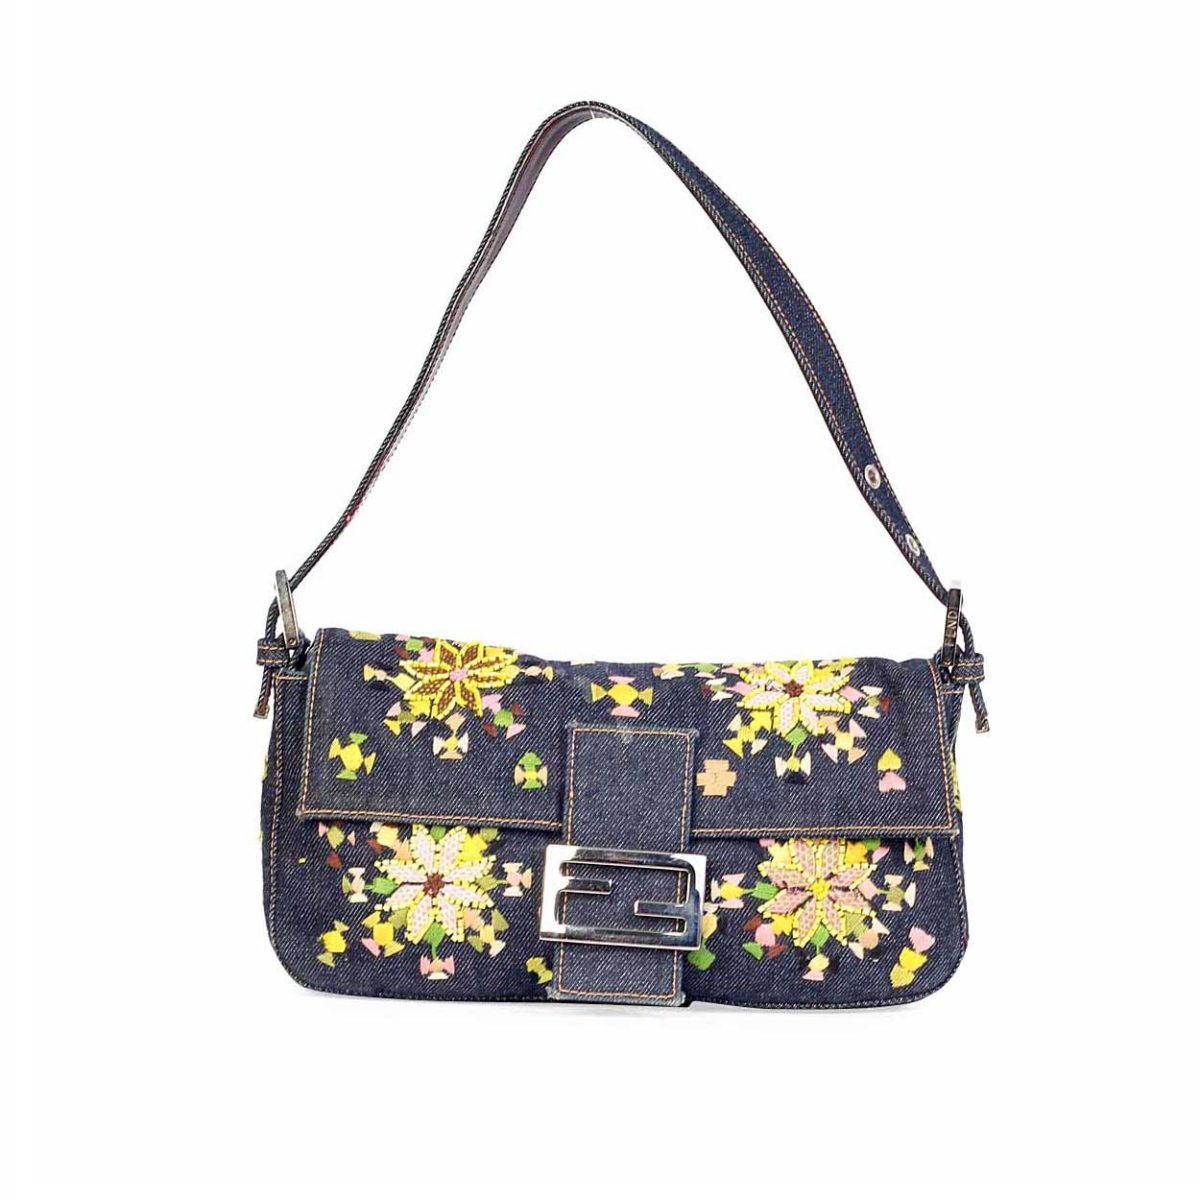 e9bd25eb0d45 FENDI Denim Baguette with Floral Embroidery   Beads